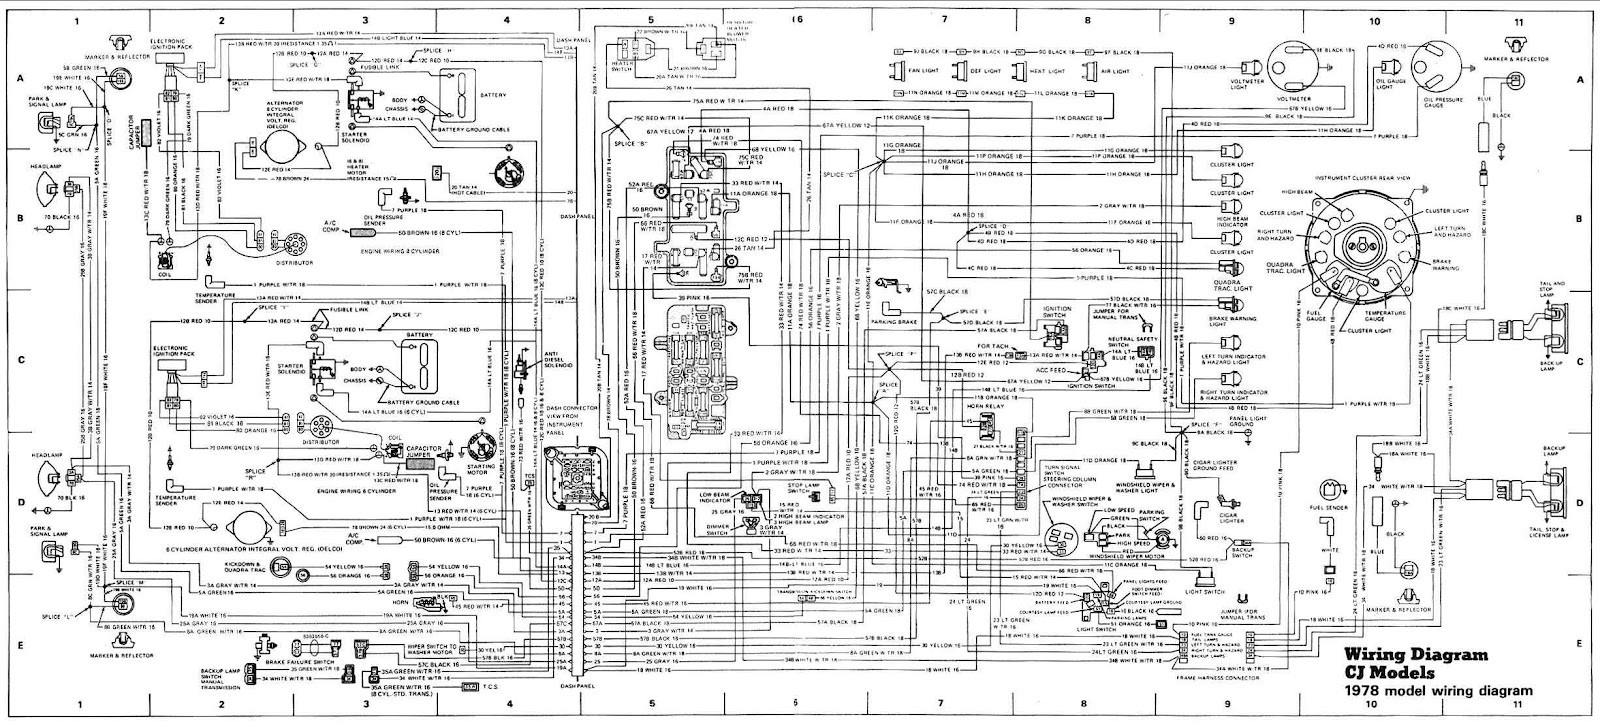 Unique 2000 Jeep Grand Cherokee Radio Wiring Diagram 28 With Additional Ignition Coil Ballast Resistor Wiring Diagram with 2000 Jeep Grand Cherokee Radio